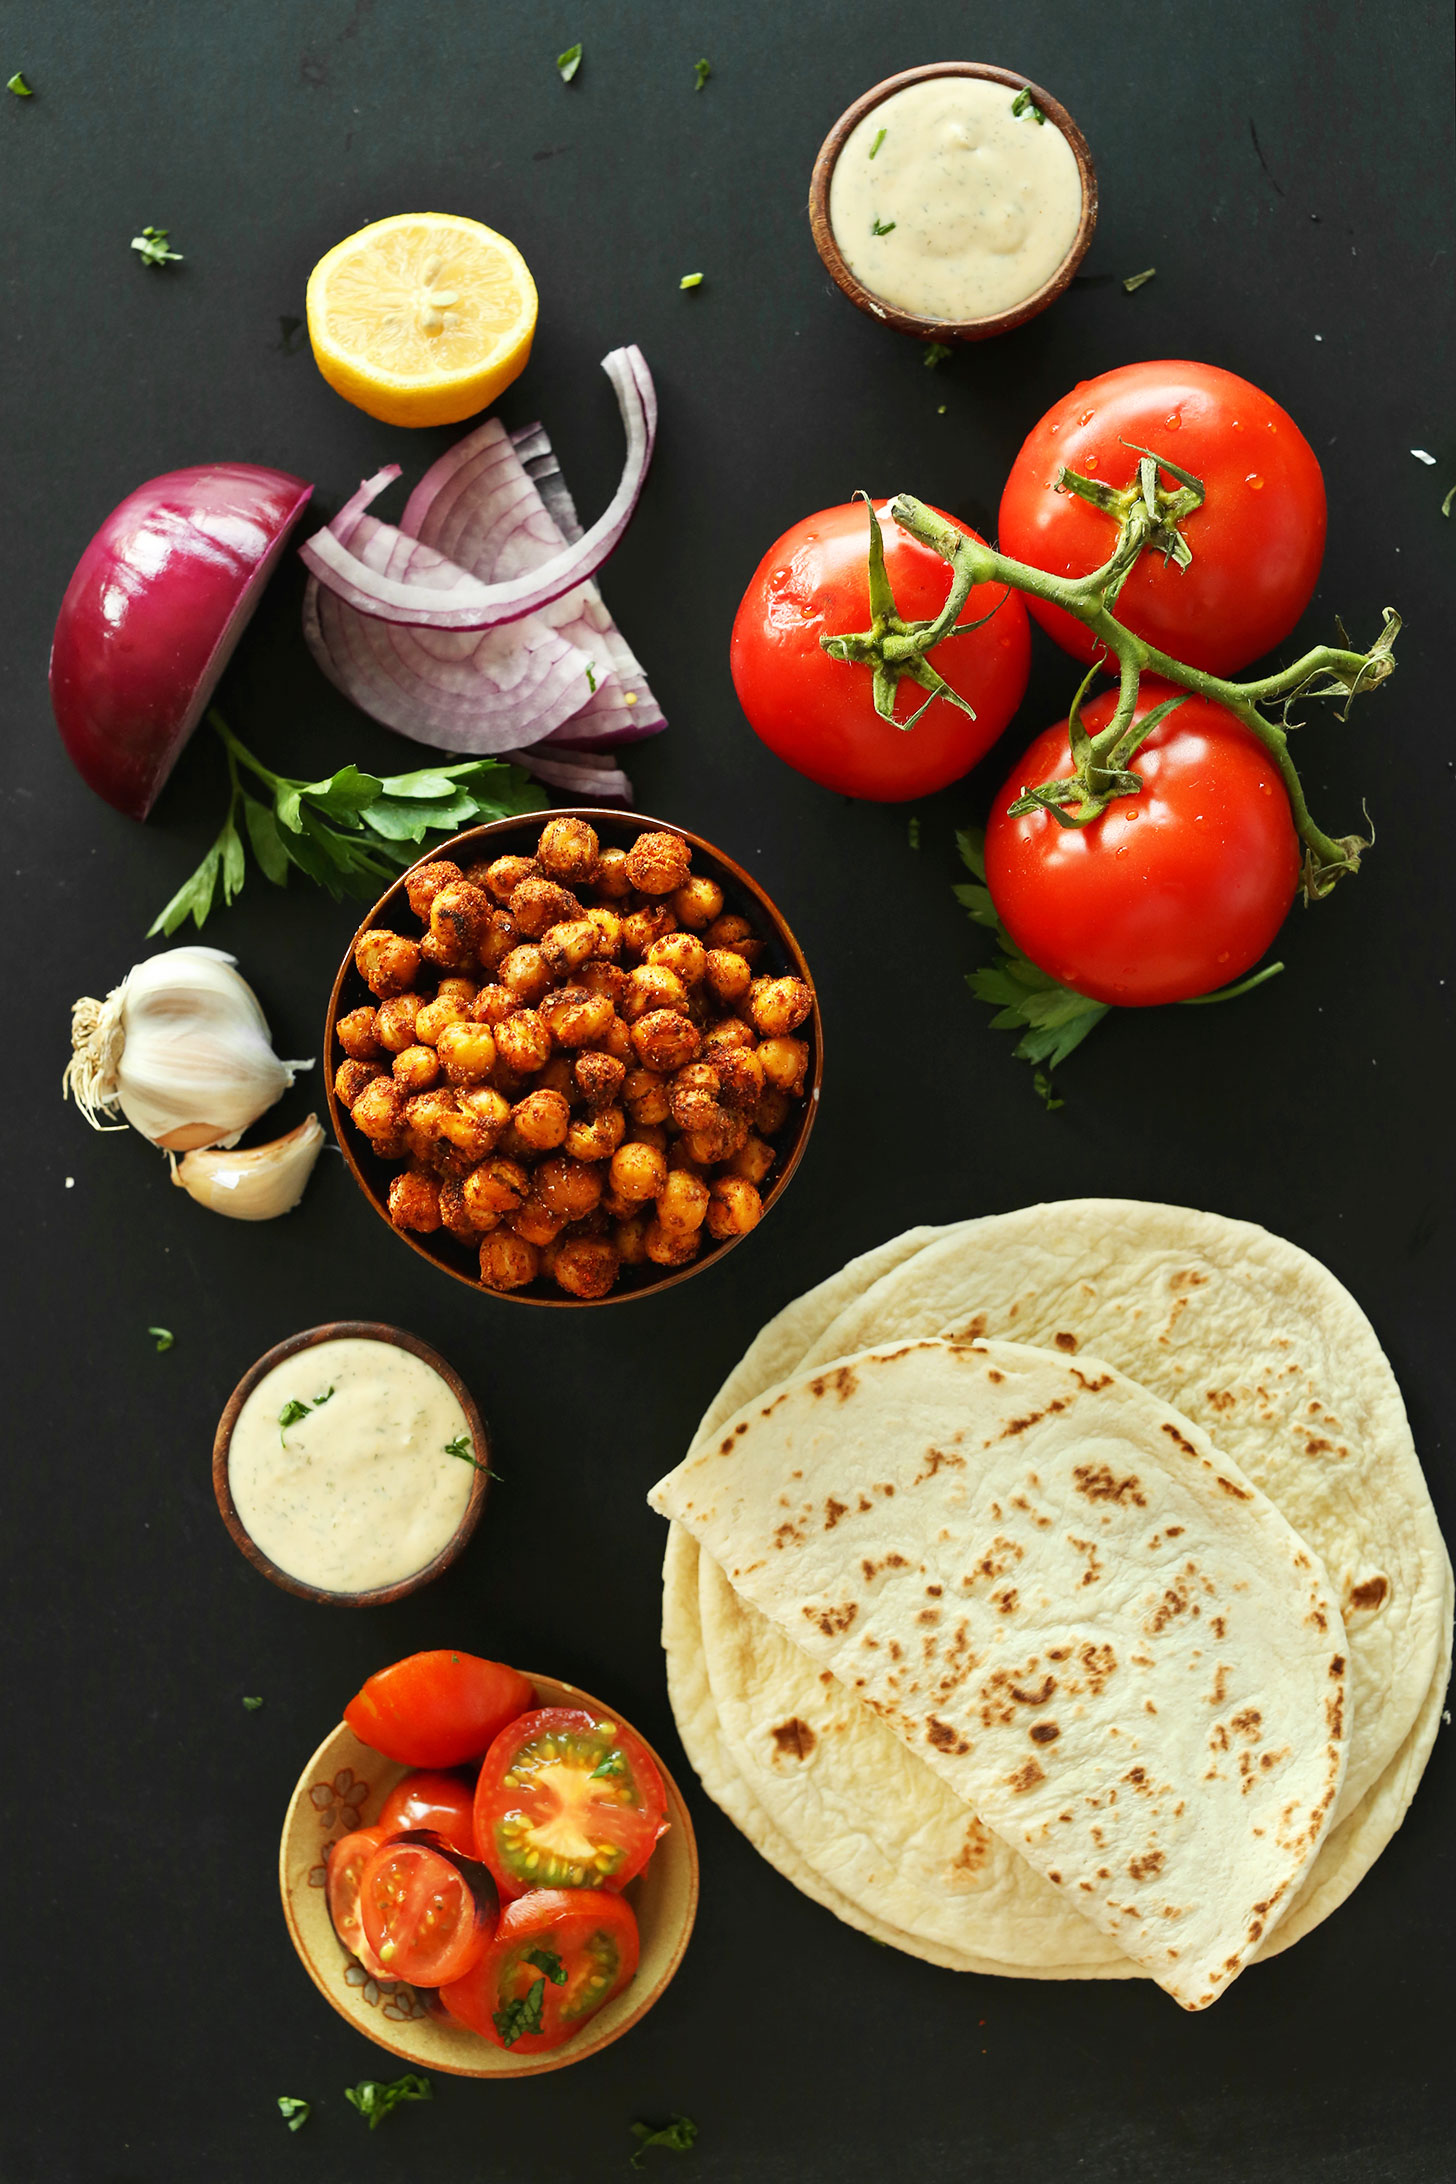 Tomatoes, Shawarma-Spiced Chickpeas, red onion, flatbread, and garlic dill sauce for making Healthy Vegan Wraps